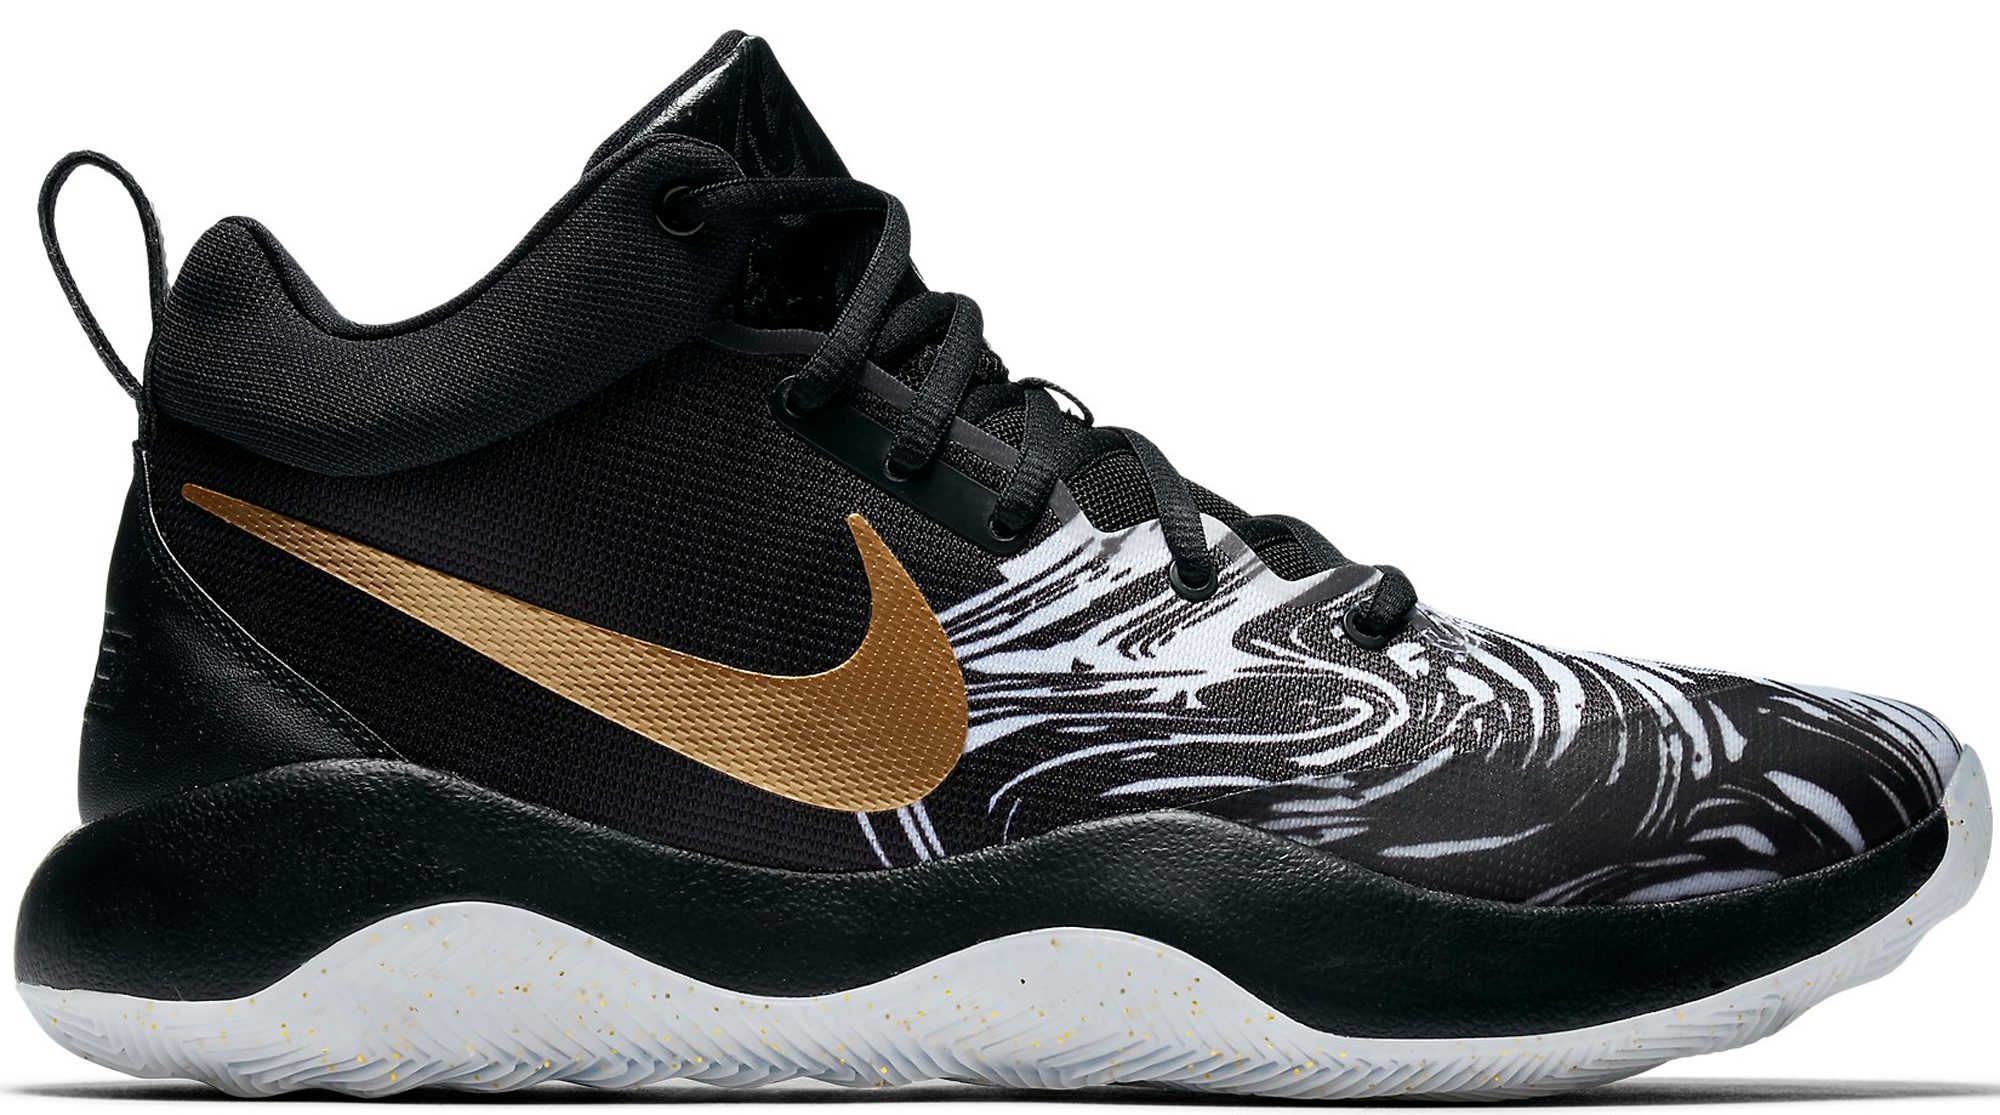 8582ac4ca5c ... Detailed Look and Review - YouTube Nike Zoom Rev BHM PE (2017) ...